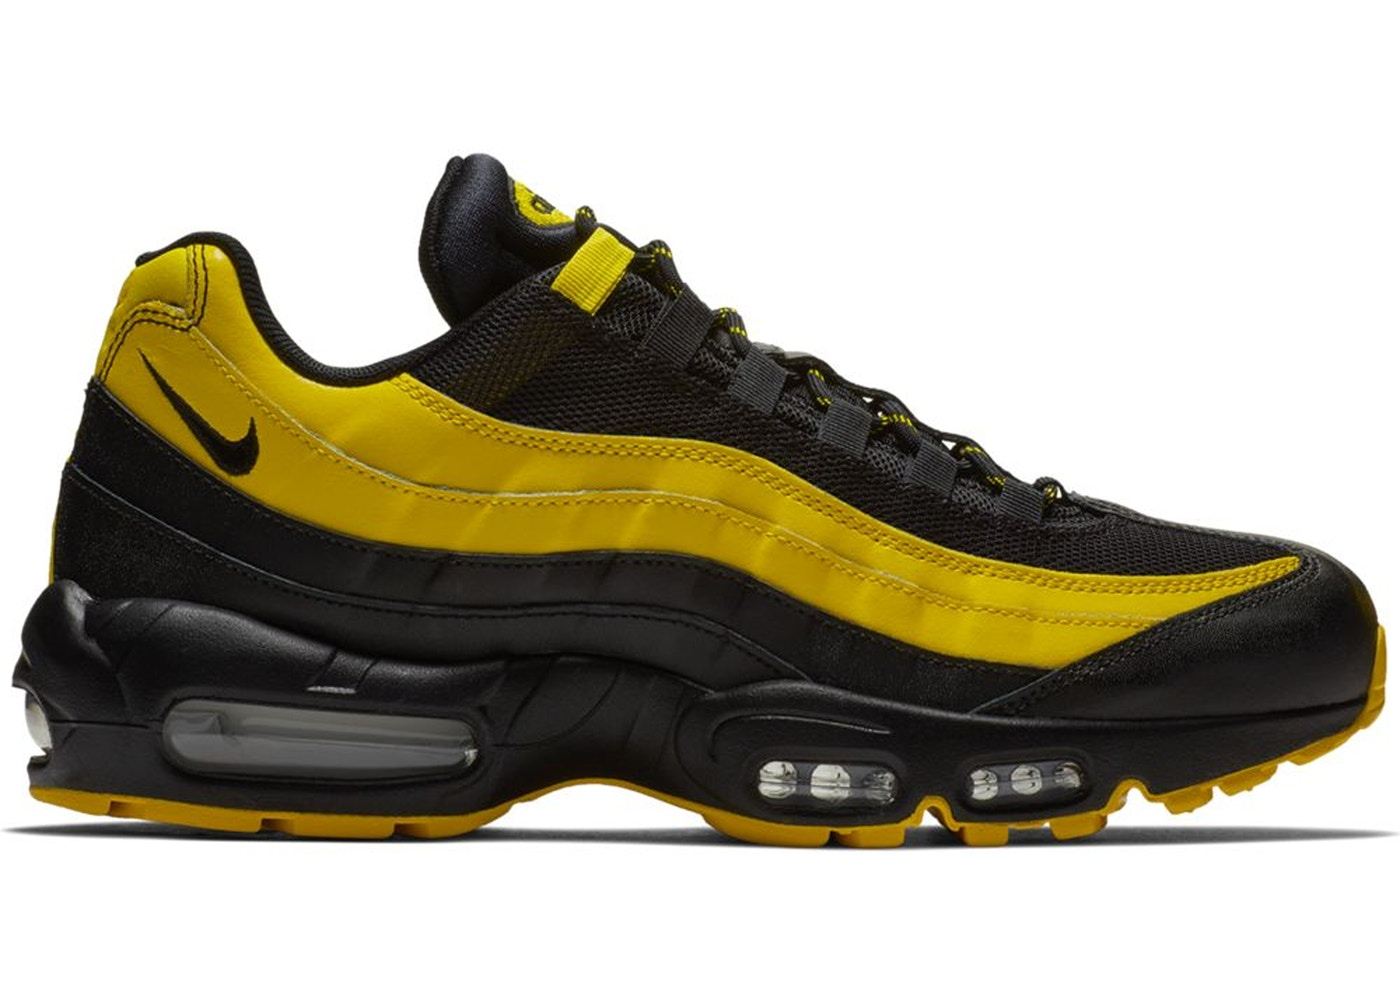 reputable site bafcd fa2b1 Air Max 95 Frequency Pack